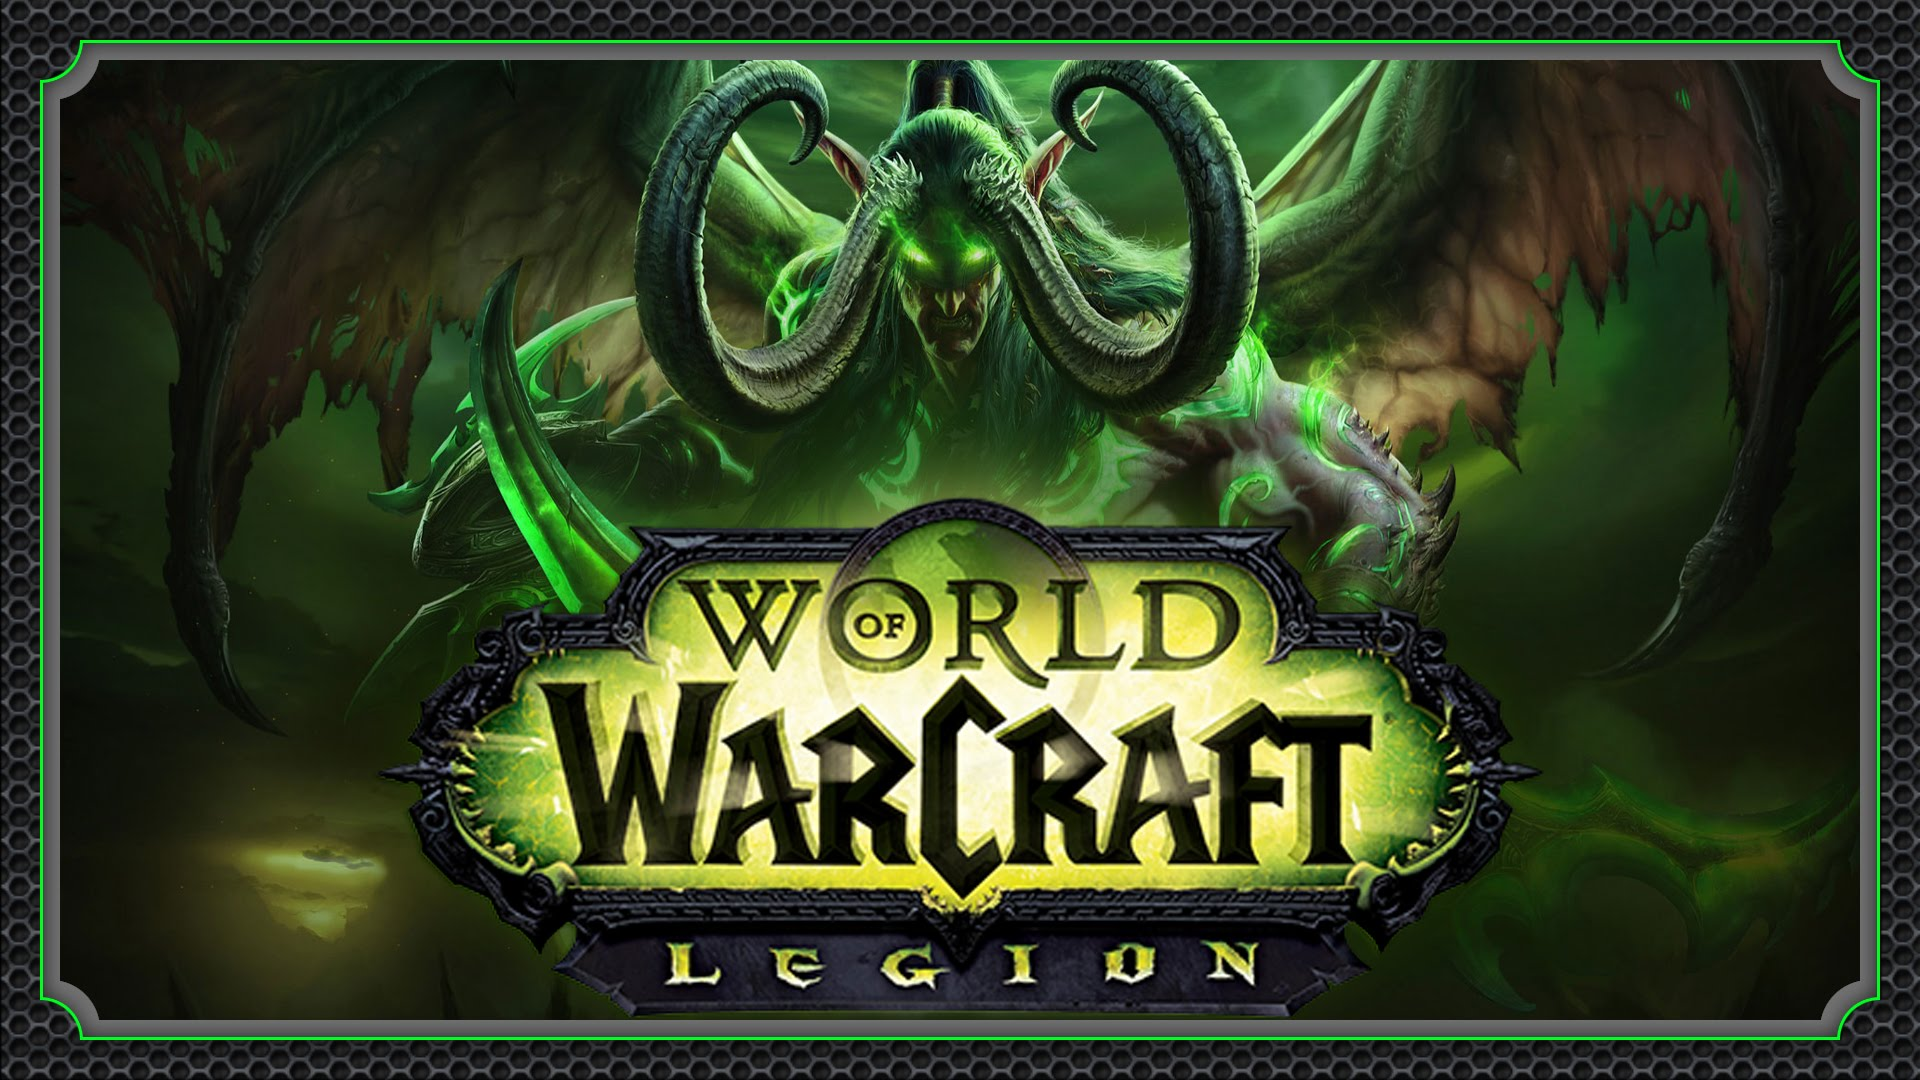 8 Windows Warcraft World Backgrounds